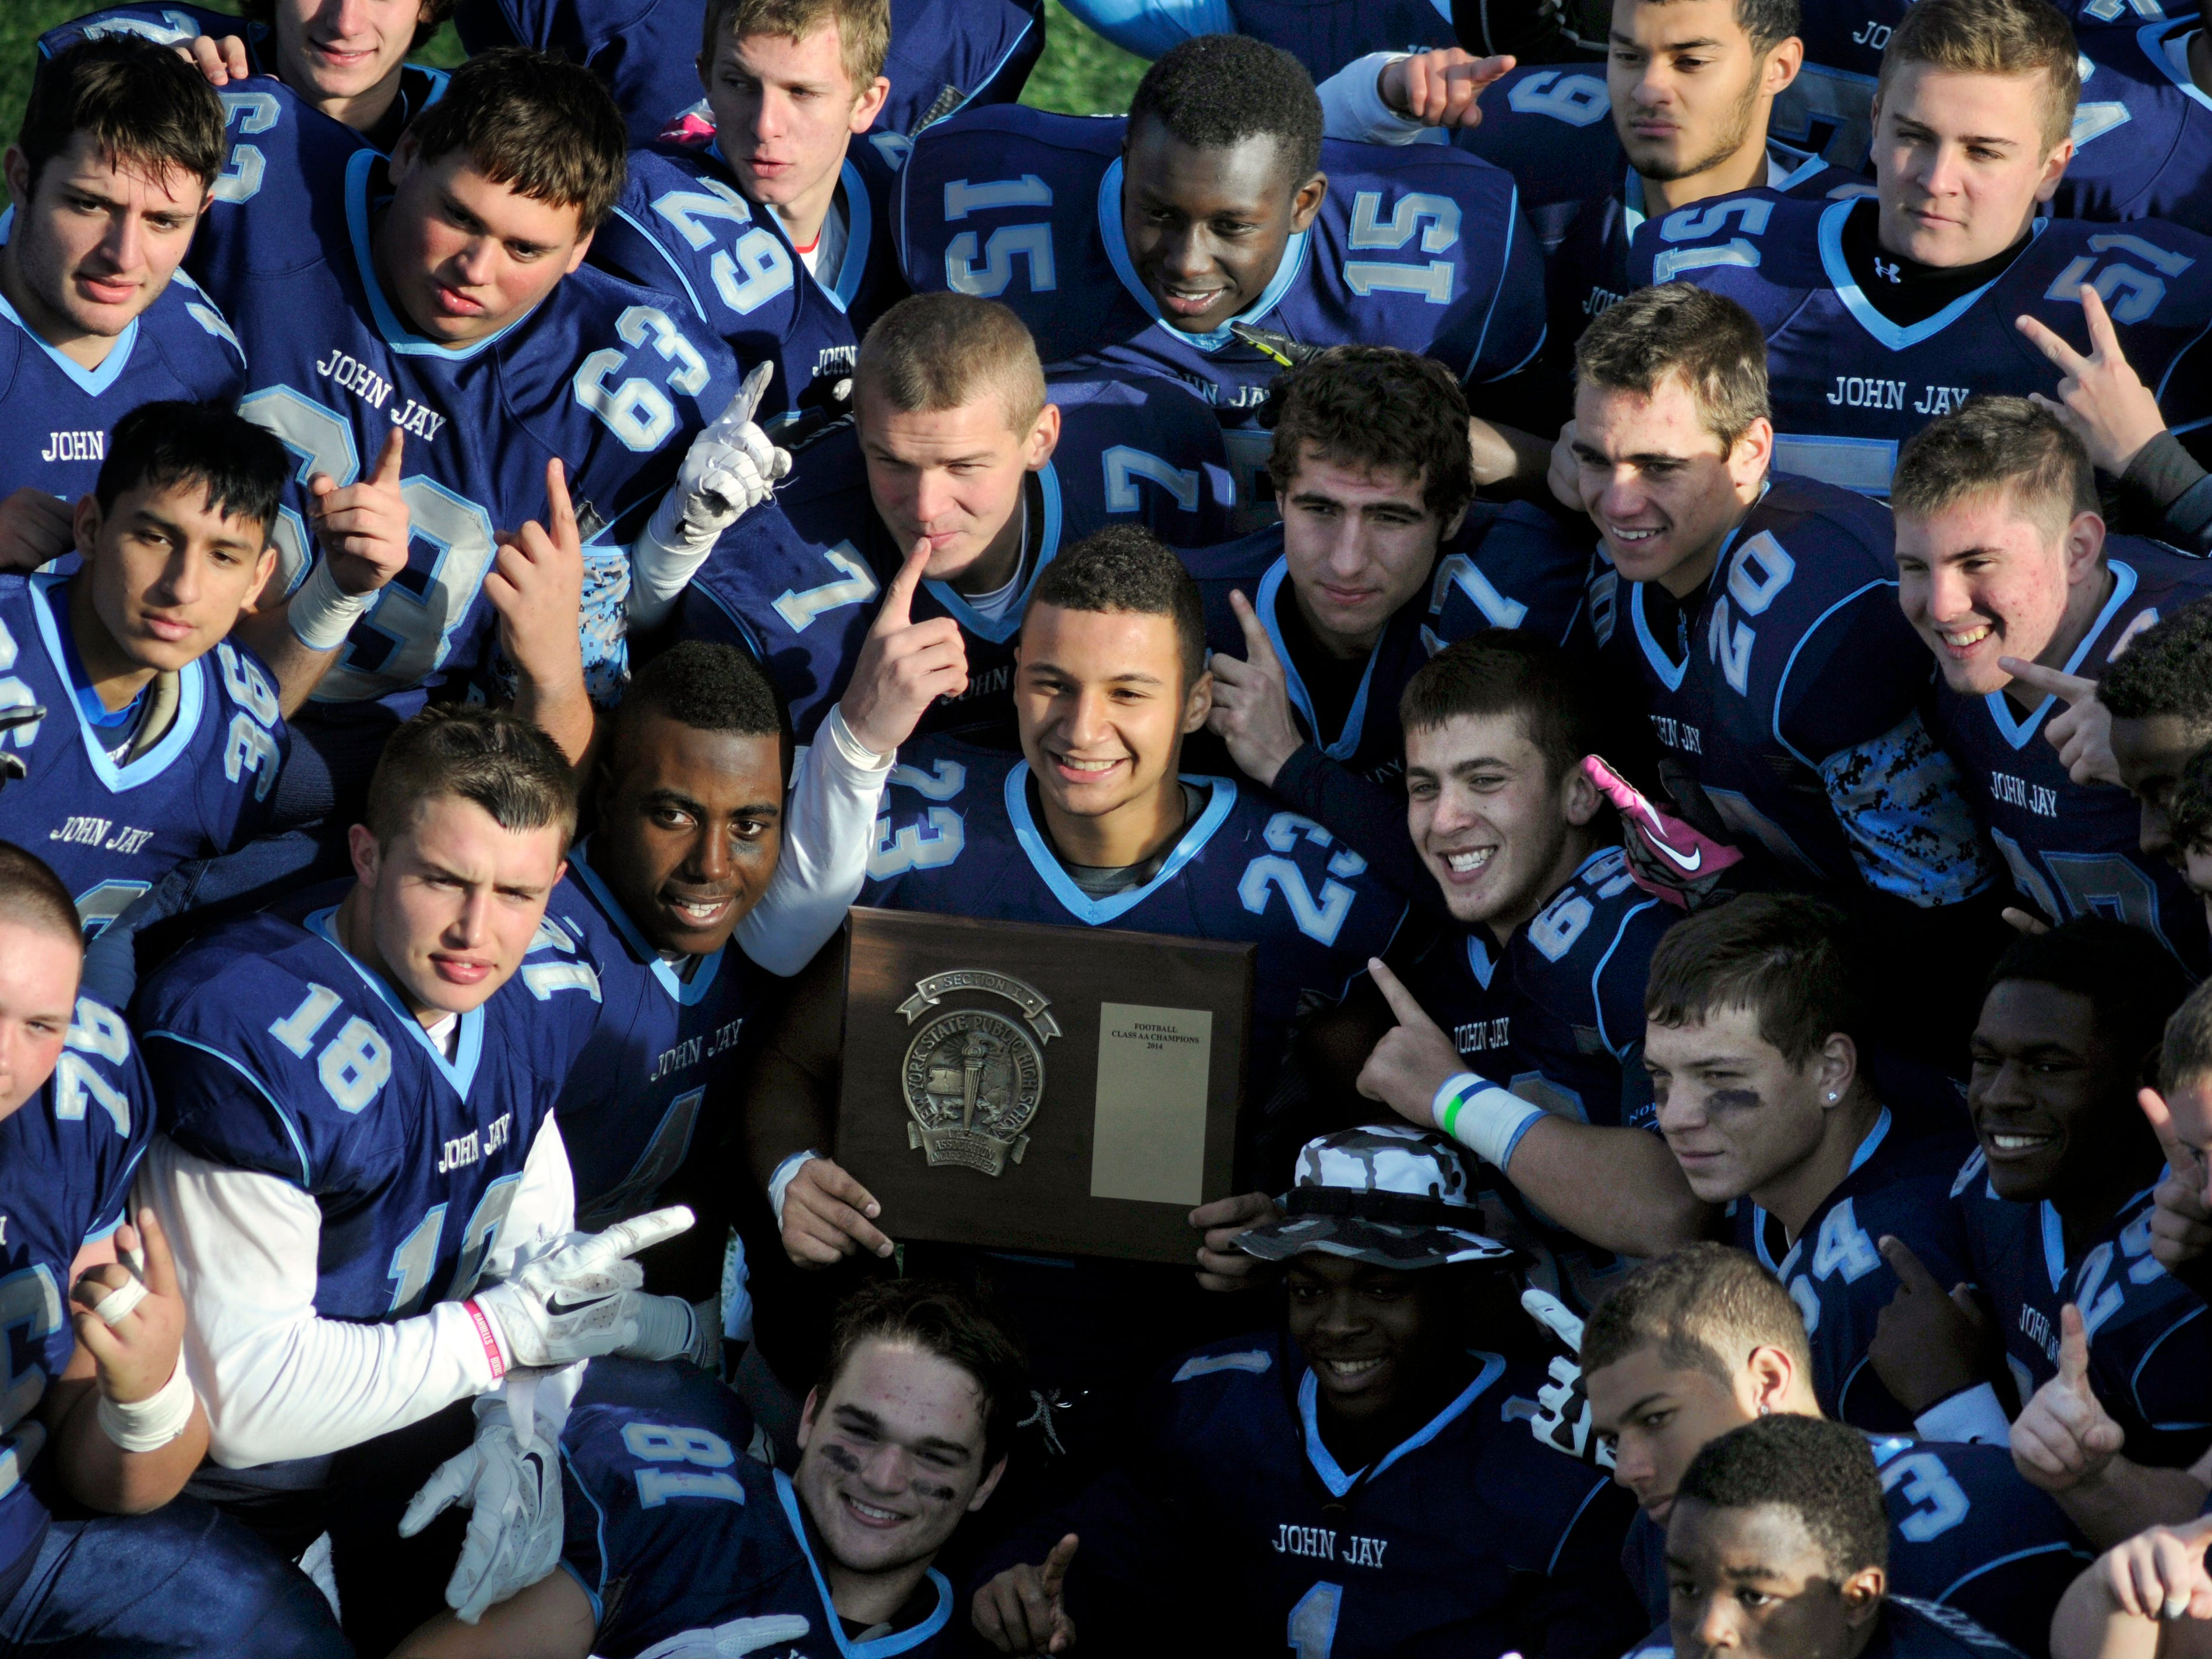 The John Jay High School football team holds the Section 1 Class AA Championship plaque on Nov. 8, 2014 in Mahopac.